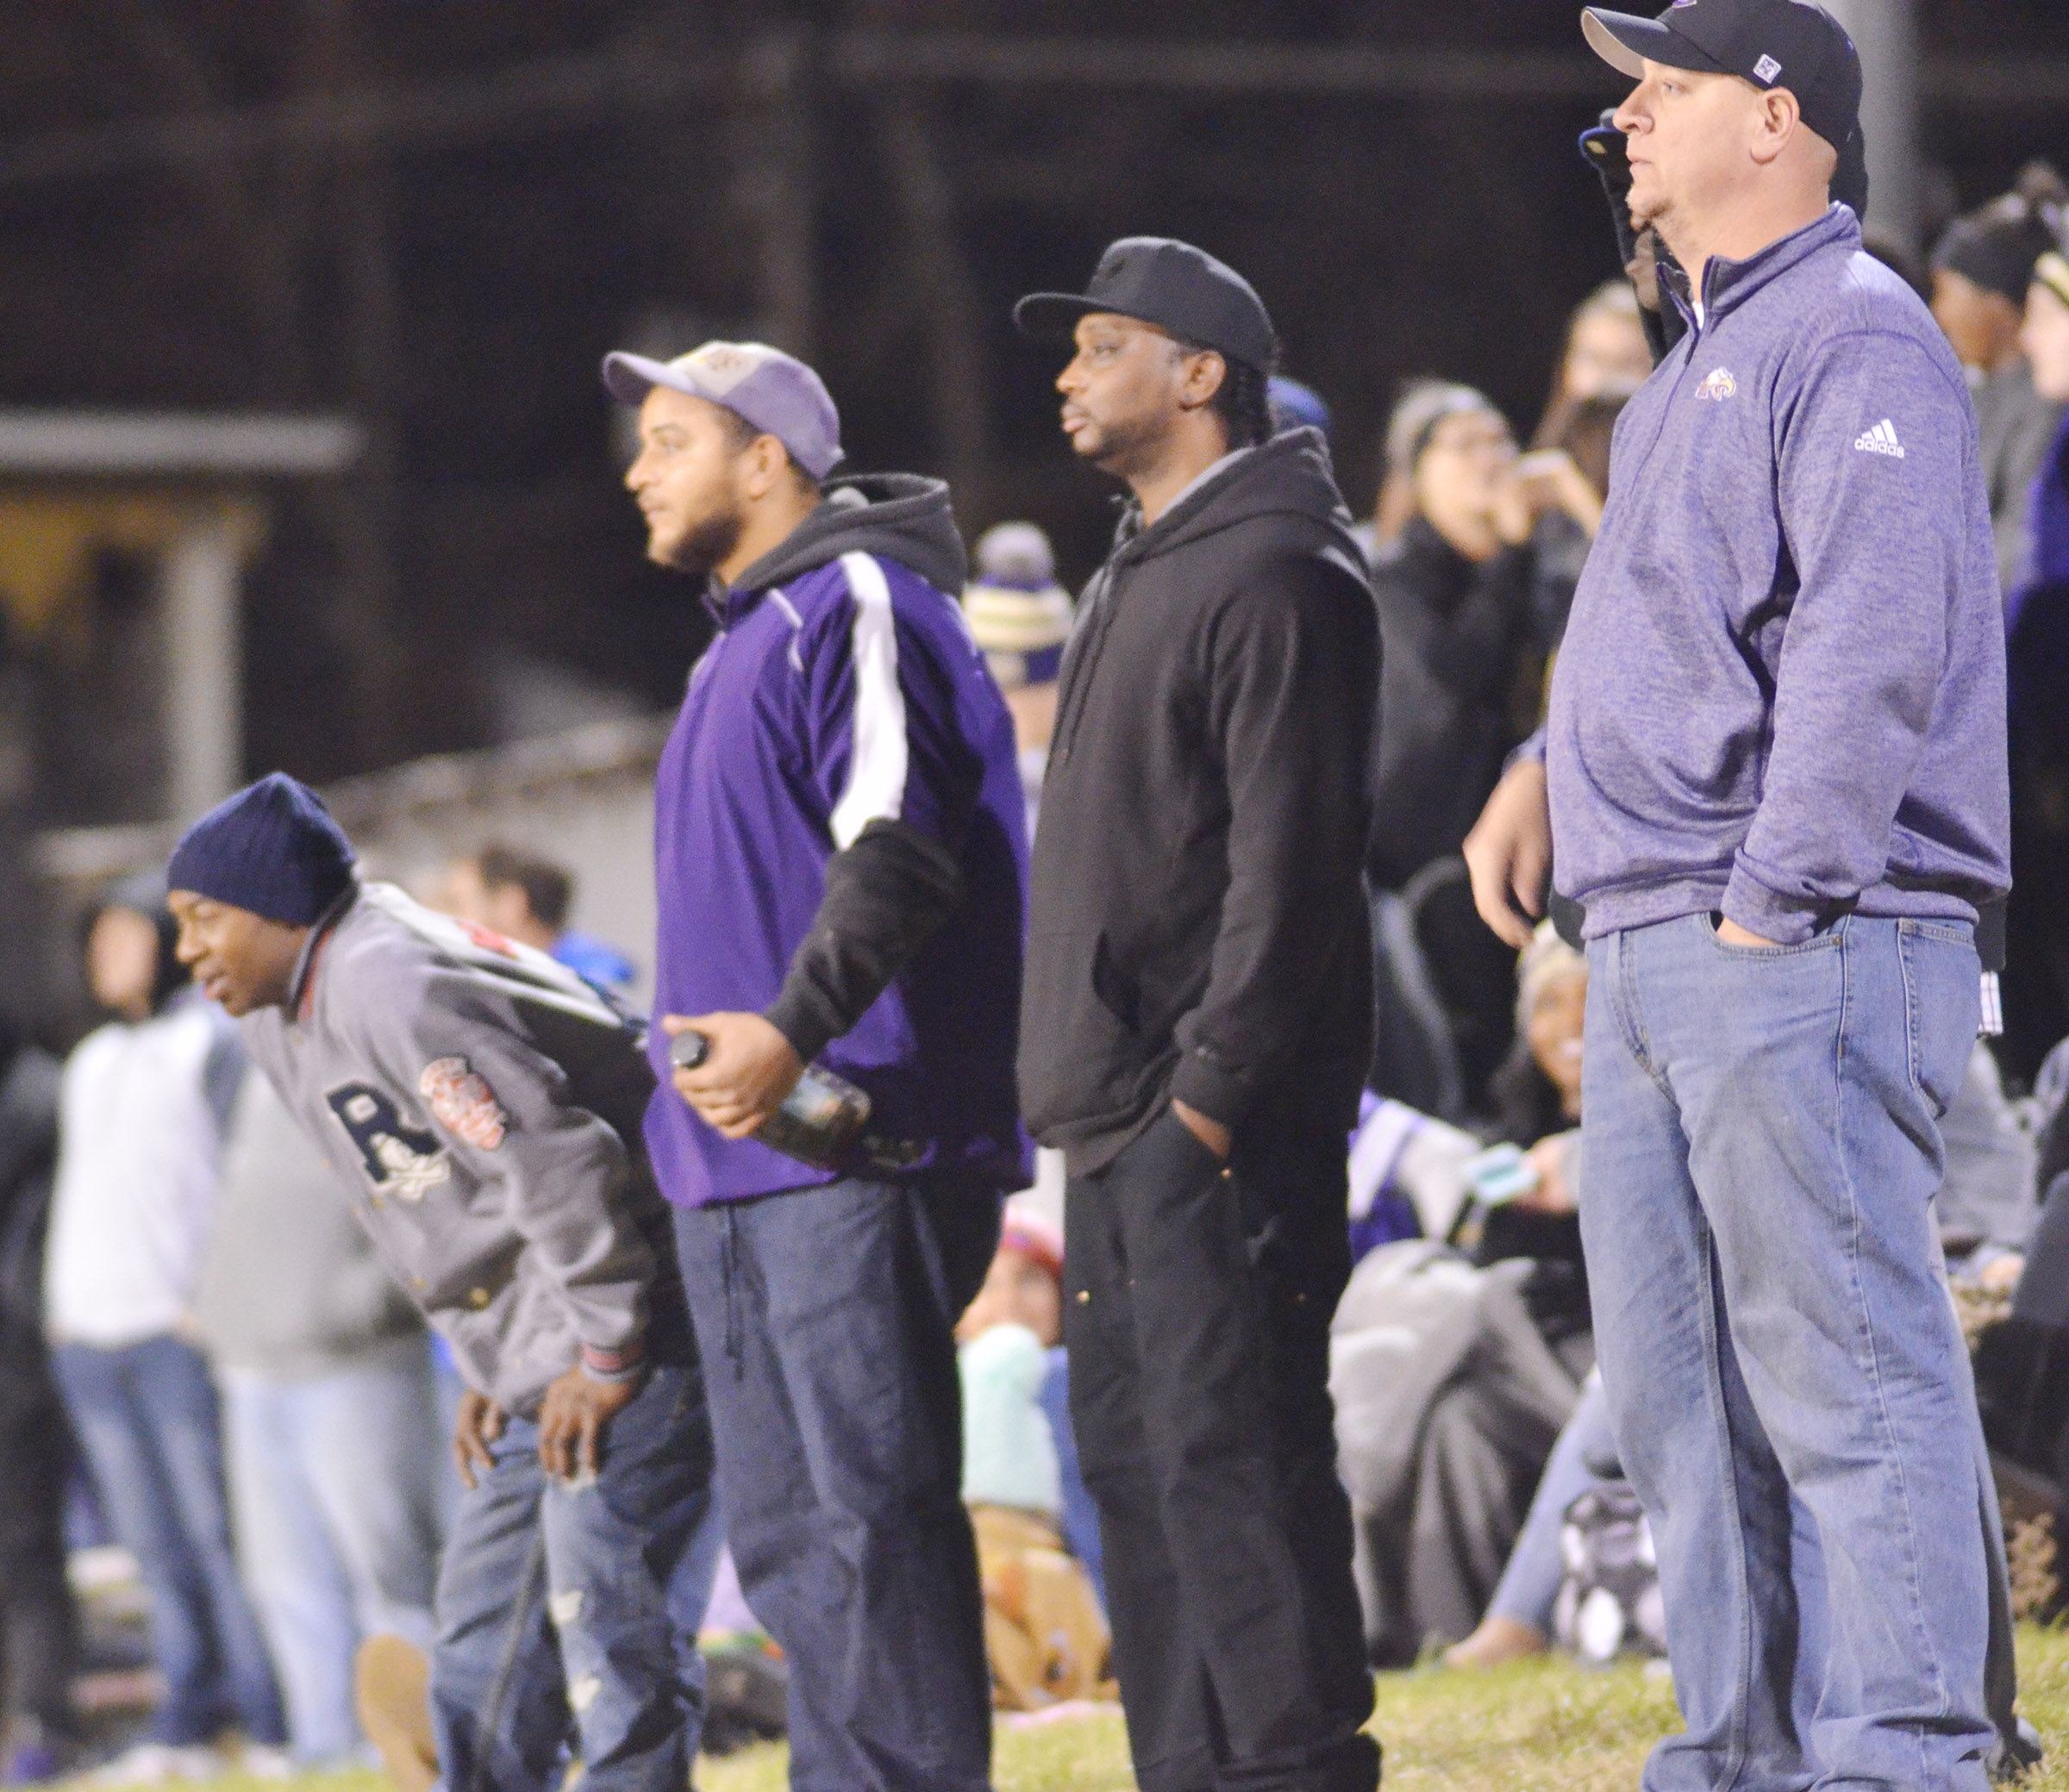 CHS Principal David Petett, at right, and Eagle fans watch the game.